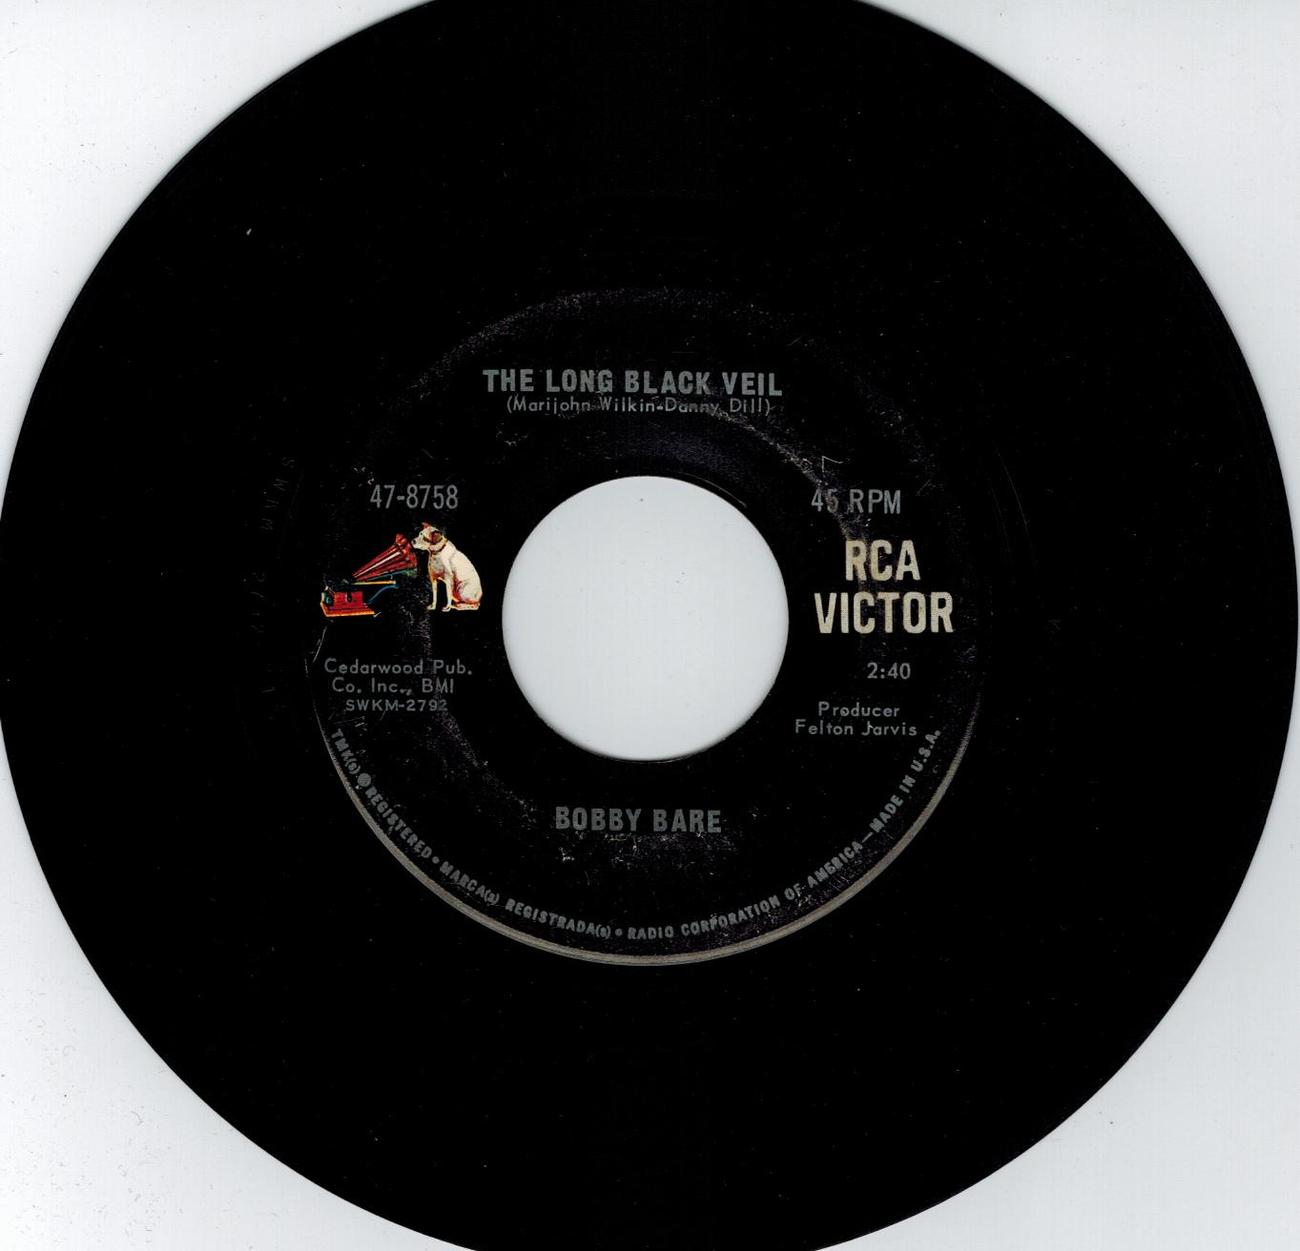 Bobby Bare 45 rpm The Long Black Veil b/w In The Same Old Way